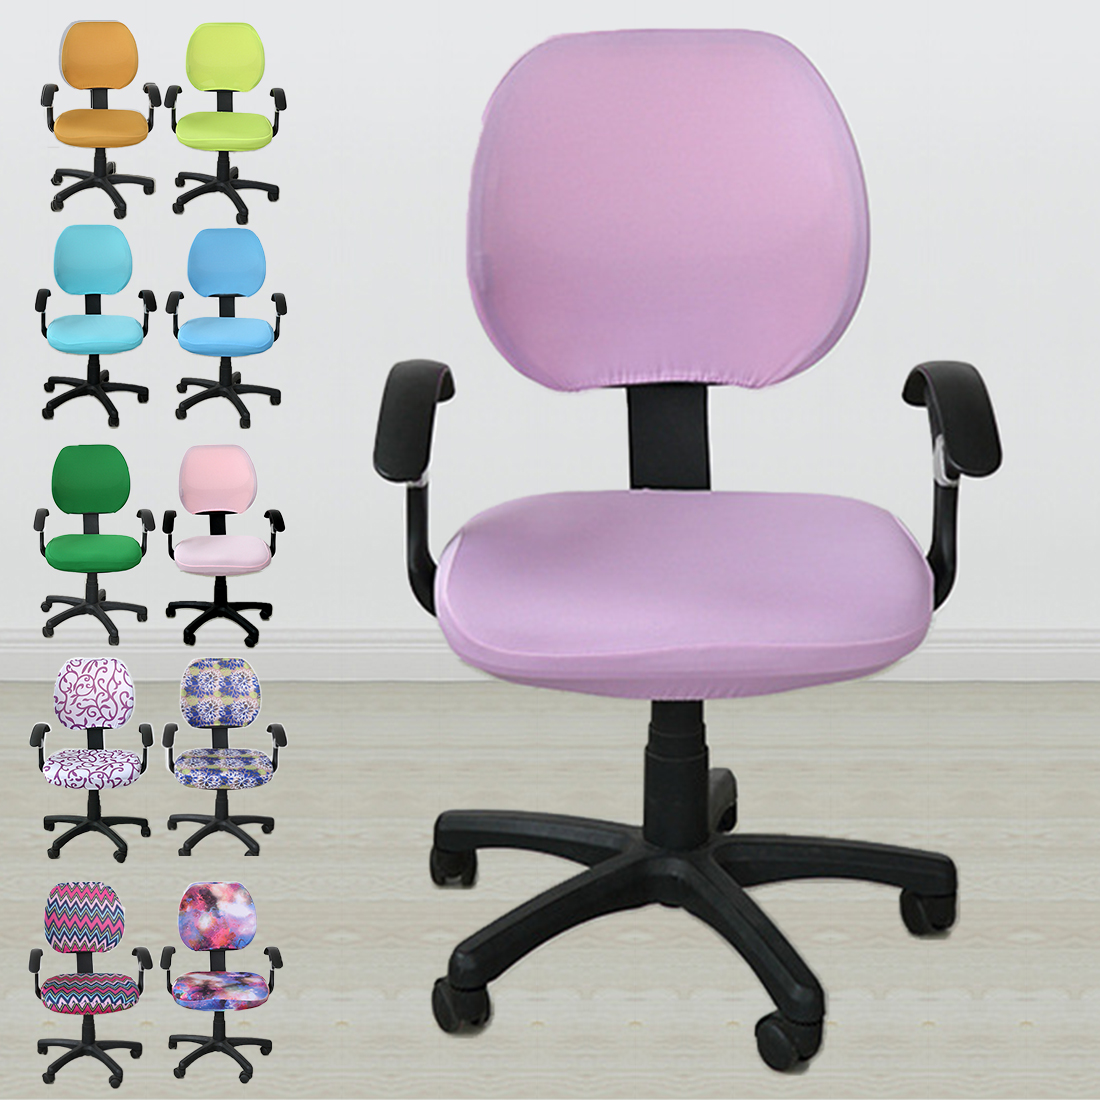 Removable Spandex Chair Cover Stretch Elastic Slipcovers Office Chair For Computer Chair Gaming Chair Chair Covering 20 Colors